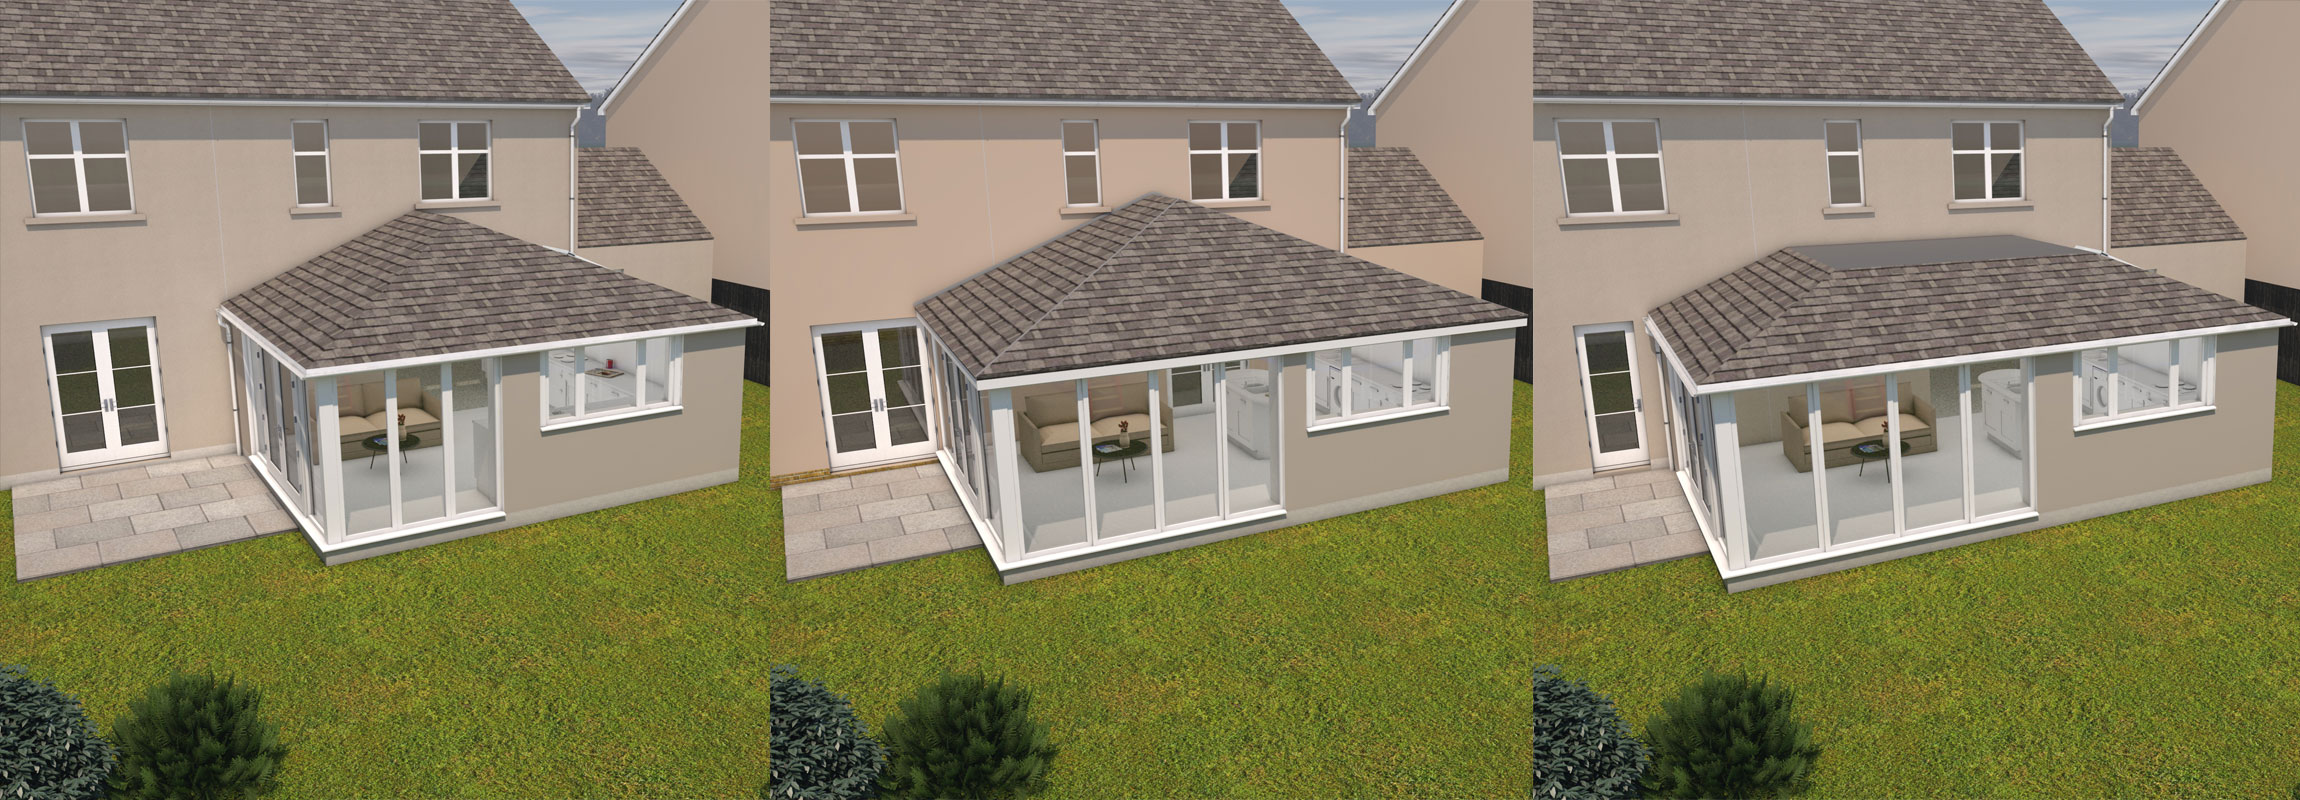 Thistle home extensions north east scotland free 3d for Home design services